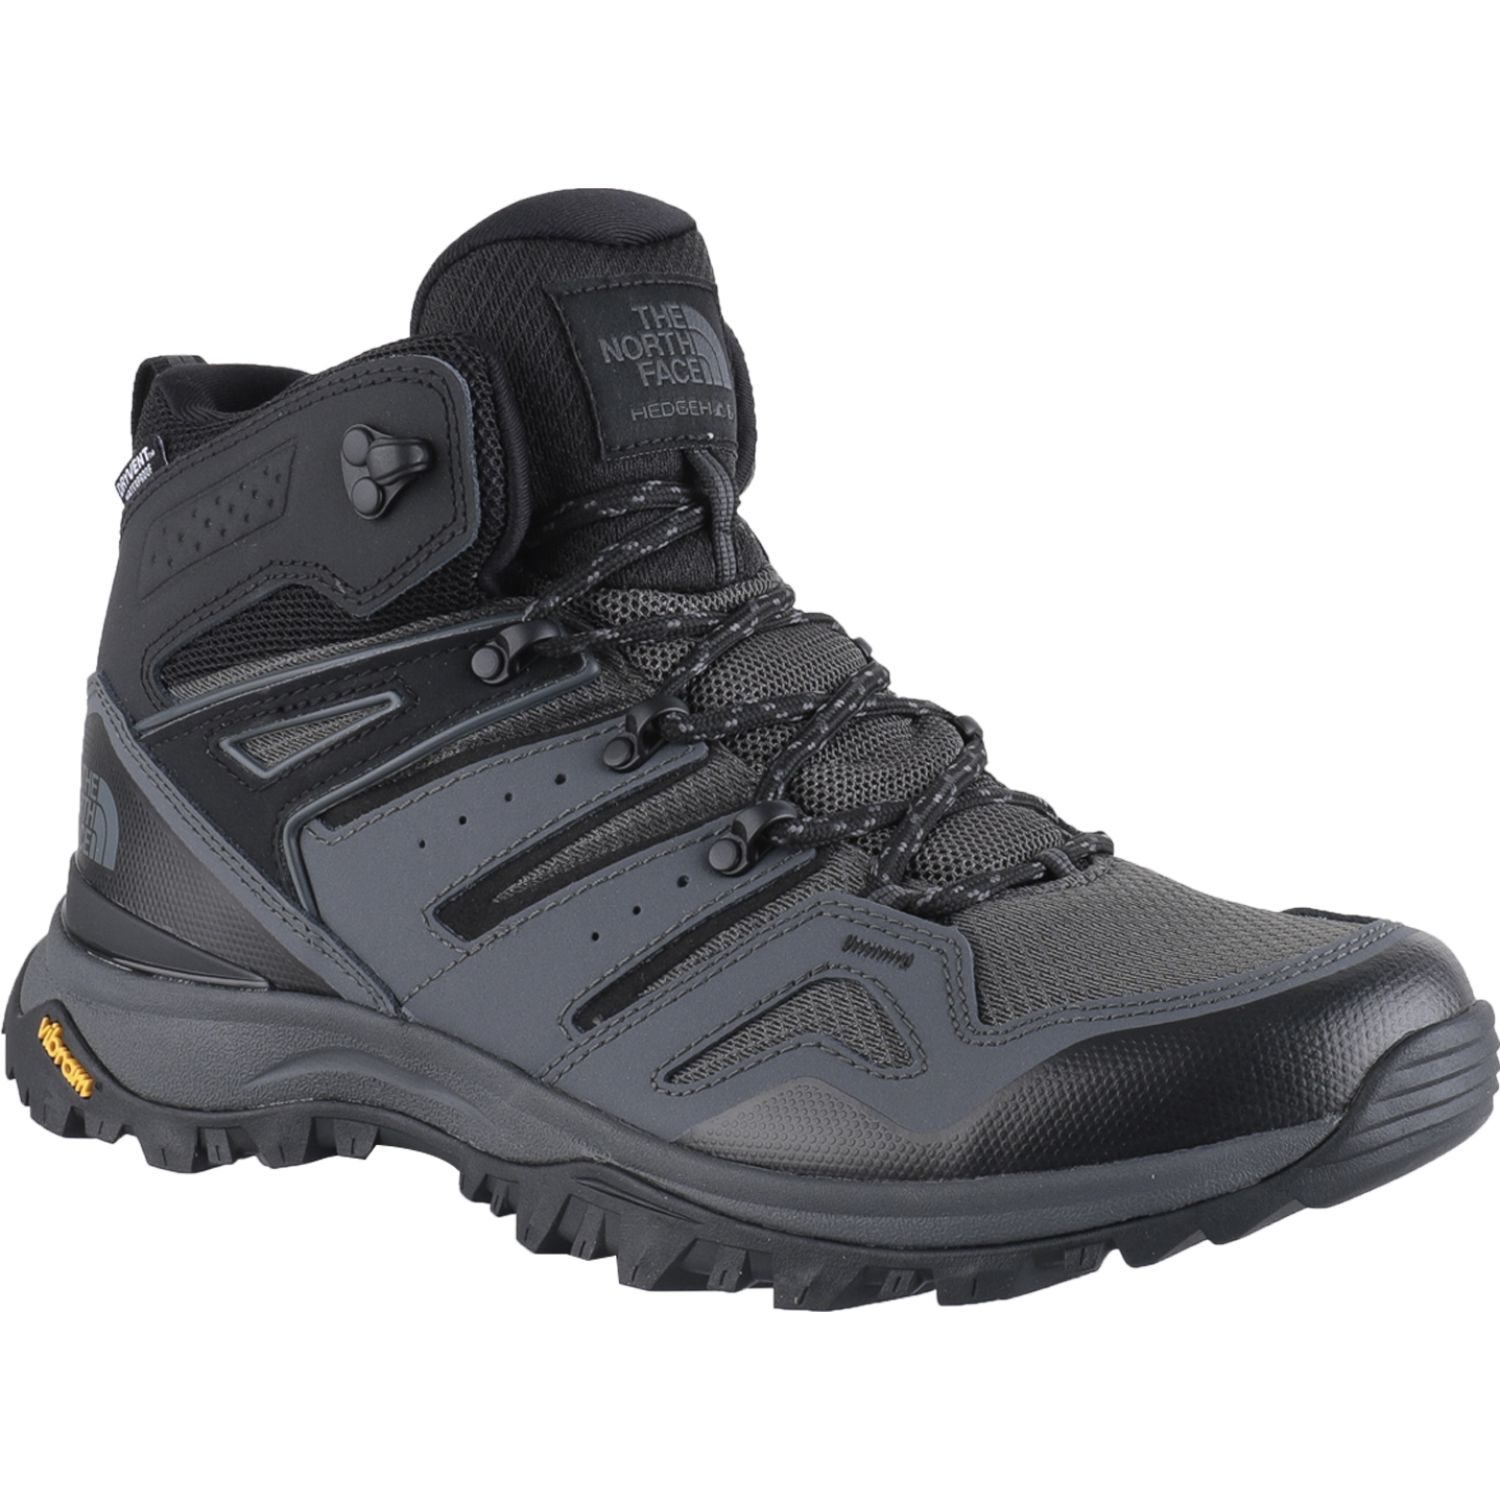 The North Face M Hedgehog Fastpack Ii Mid Wp Negro Zapatos de senderismo